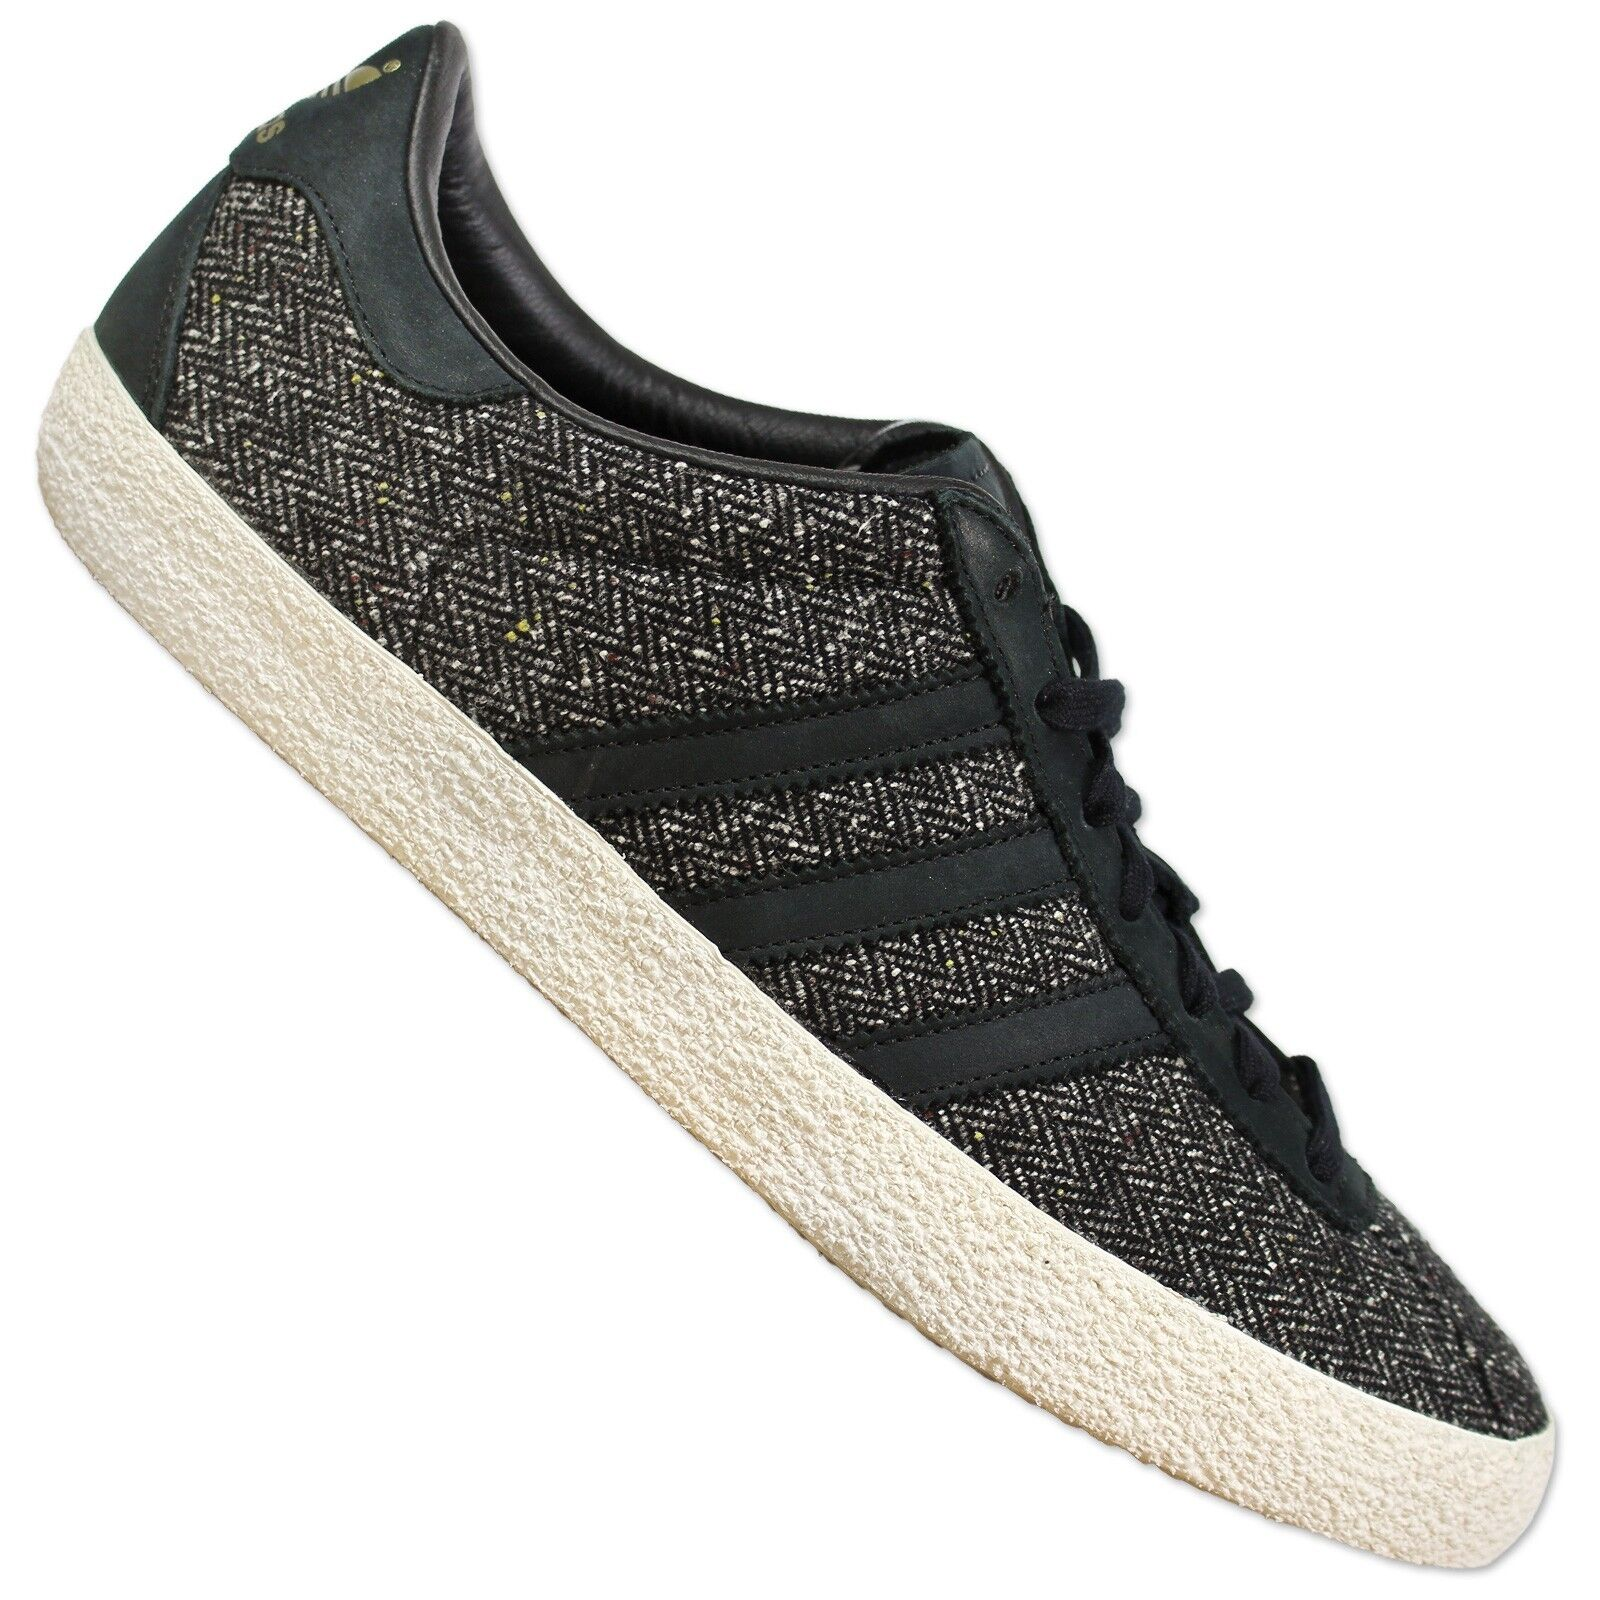 ADIDAS 70s Originals Gazelle 70s ADIDAS  Scarpe in pelle Tweed Nero 45 1/3 bcf65a